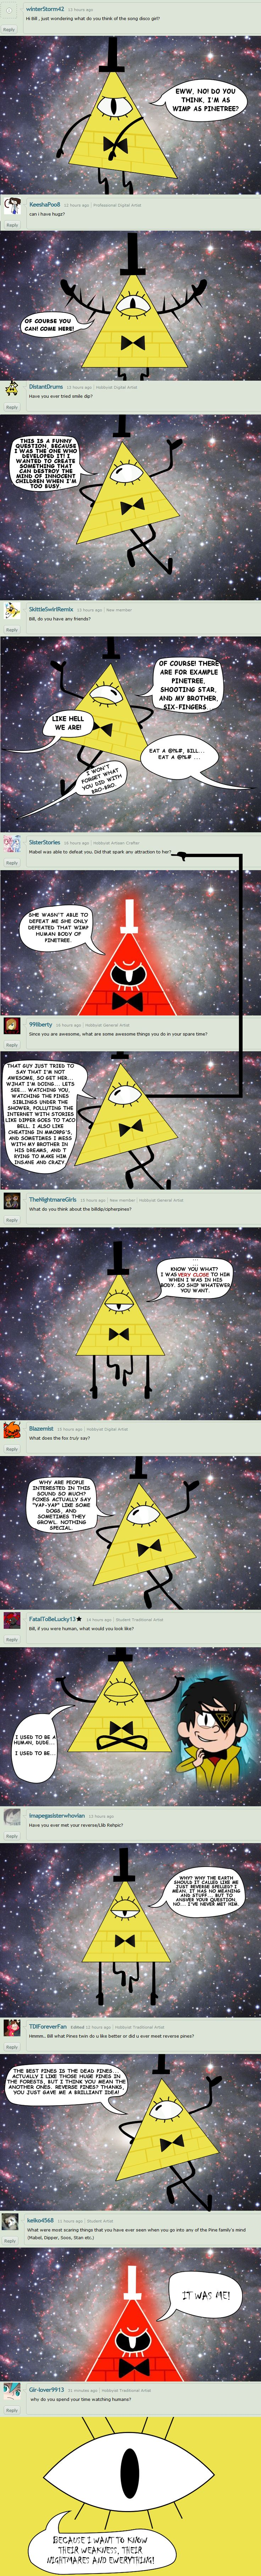 Ask Bill Cipher 3: Answer em' all by rikoudu.deviantart.com on @DeviantArt